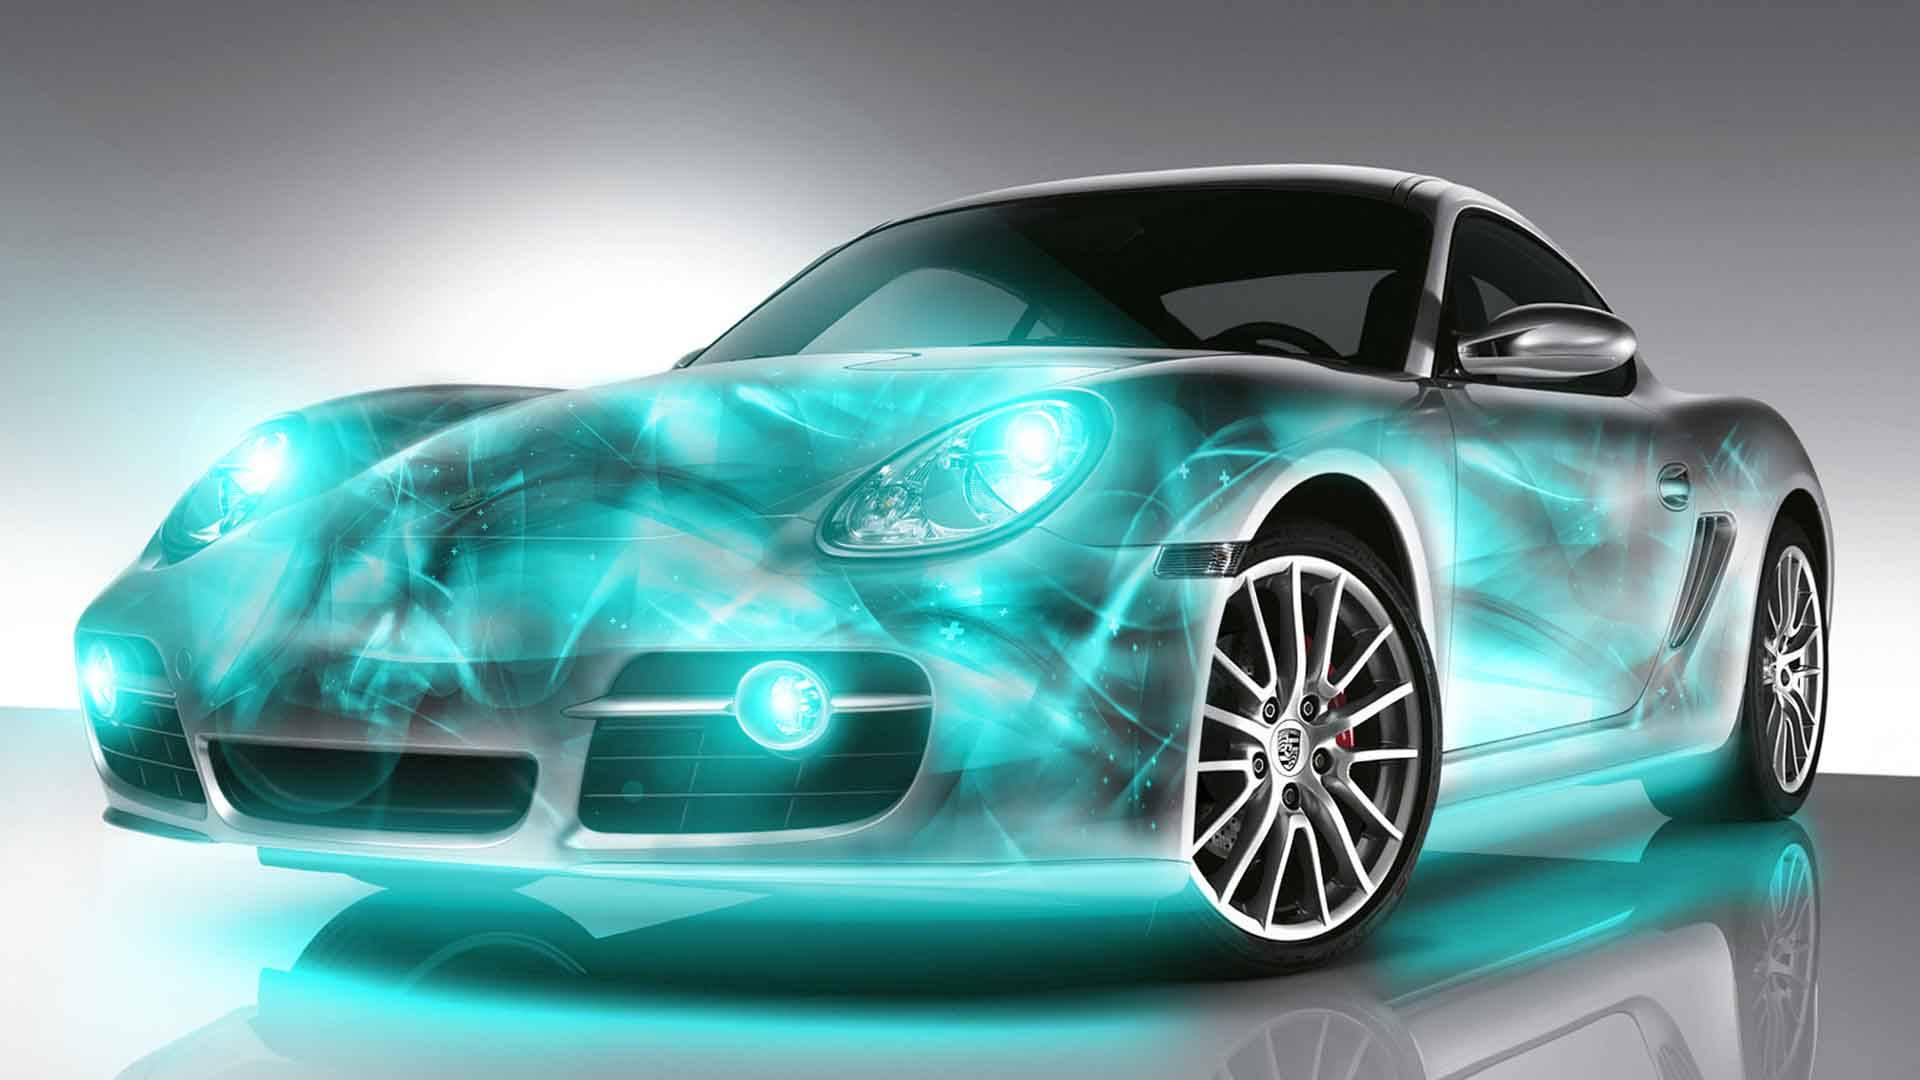 cars image wallpaper blue light 1920x1080 1920x1080